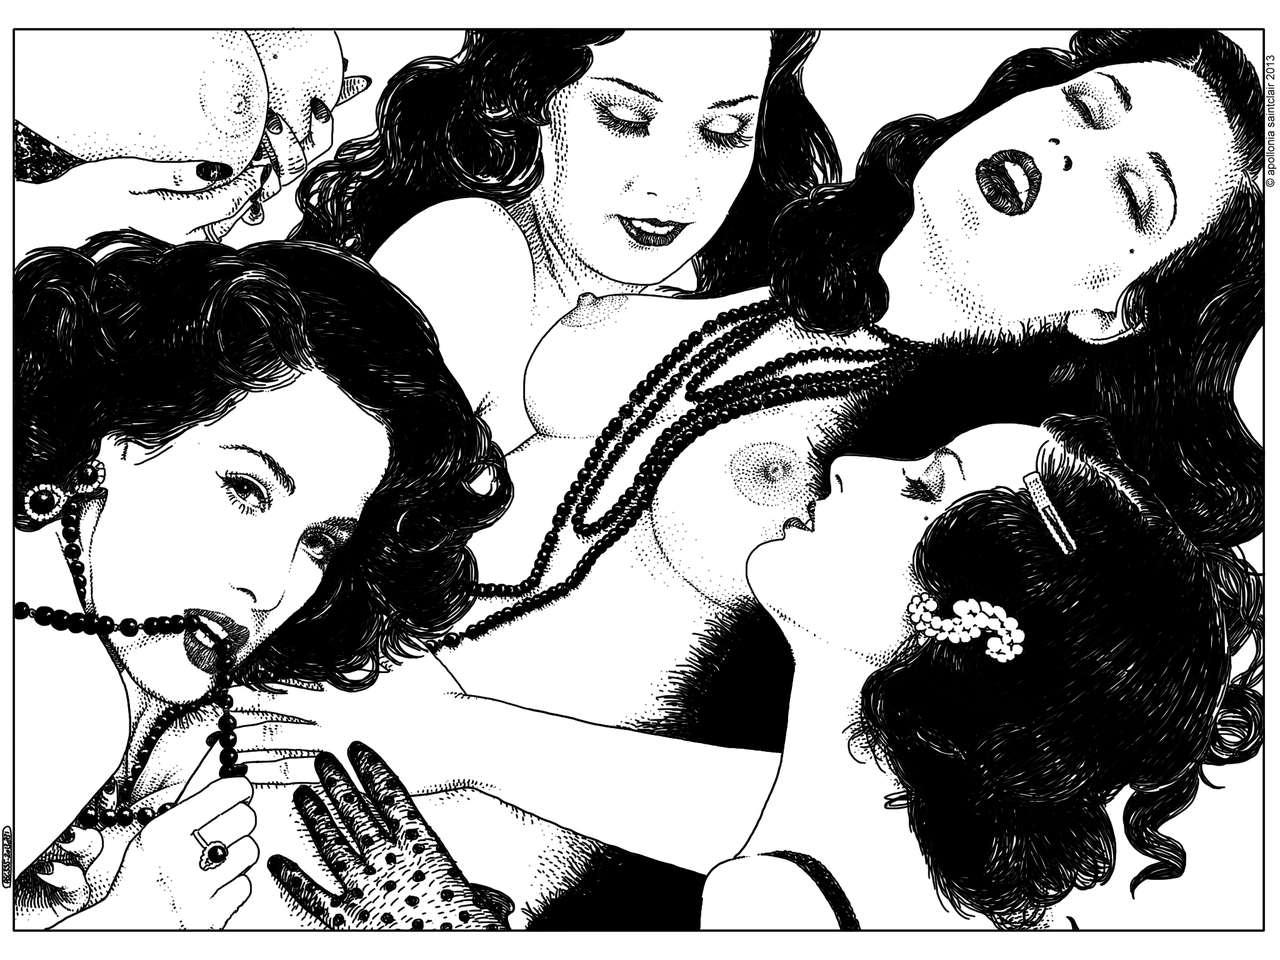 Apollonia Saintclair's Seduction: tumblr_mqtrefagRQ1rojfyfo1_1280.png